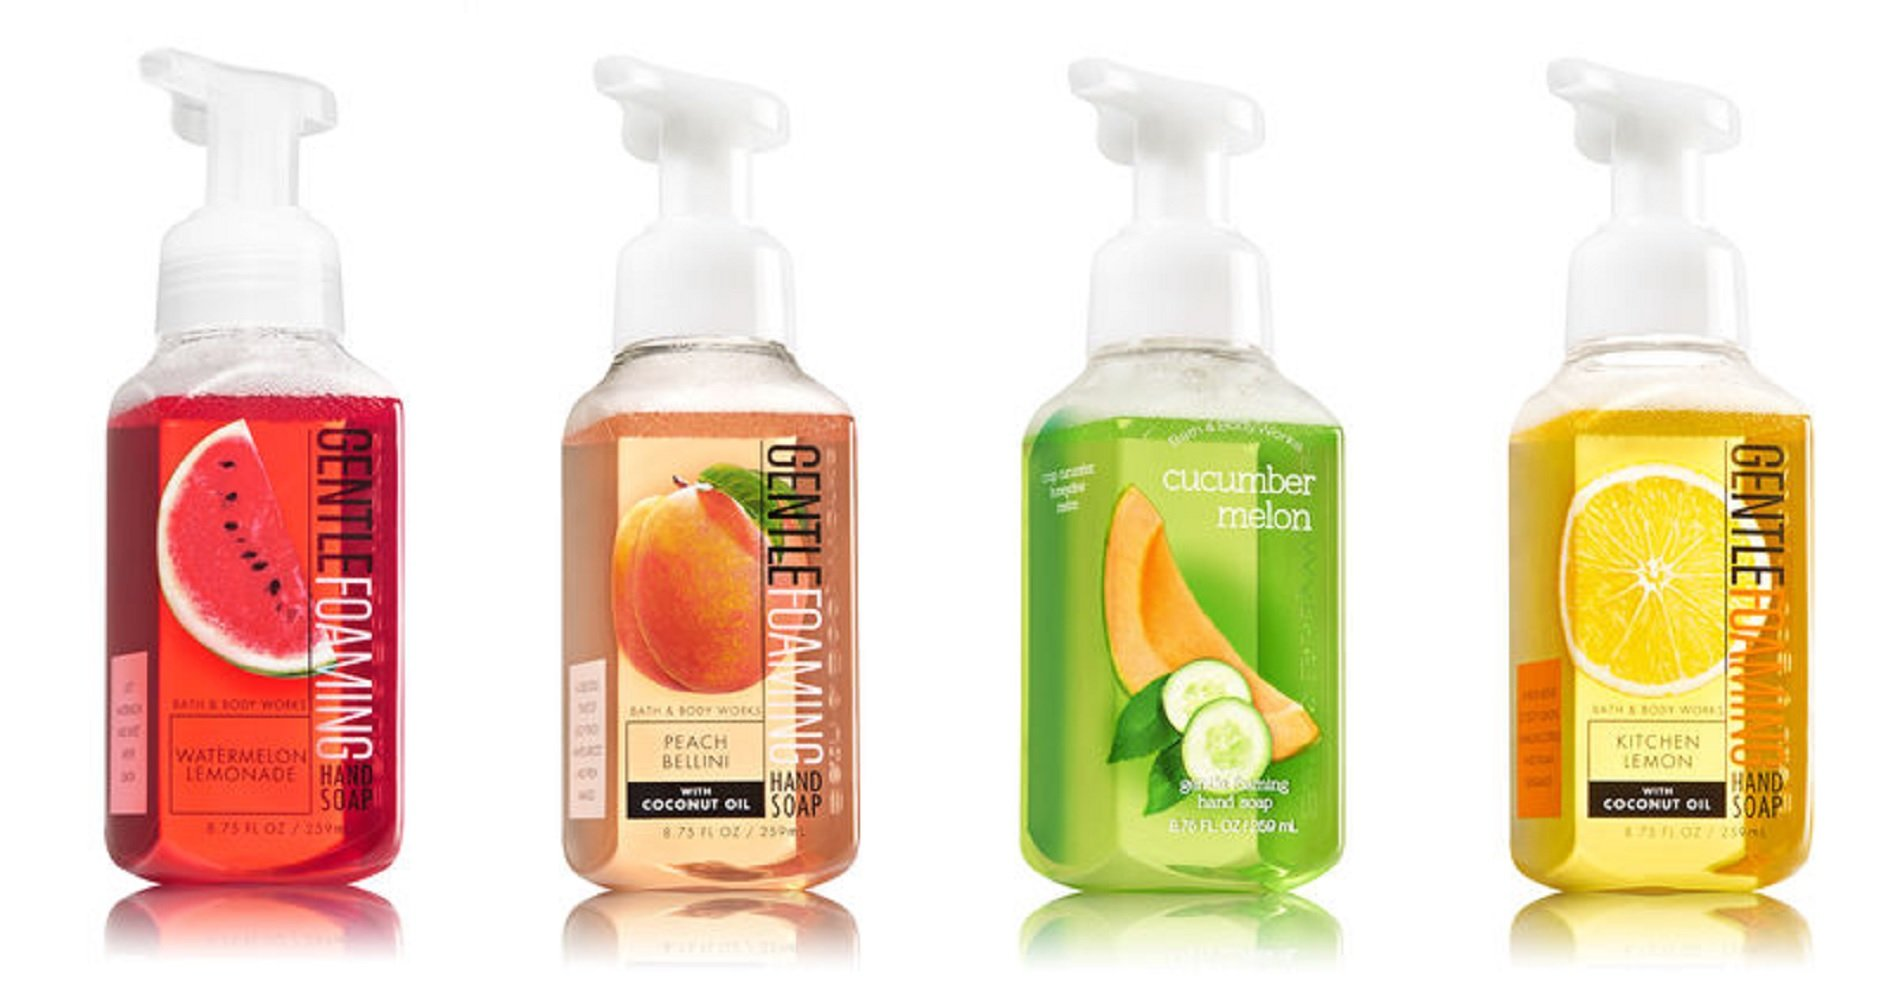 Bath Body Works Collection Watermelon